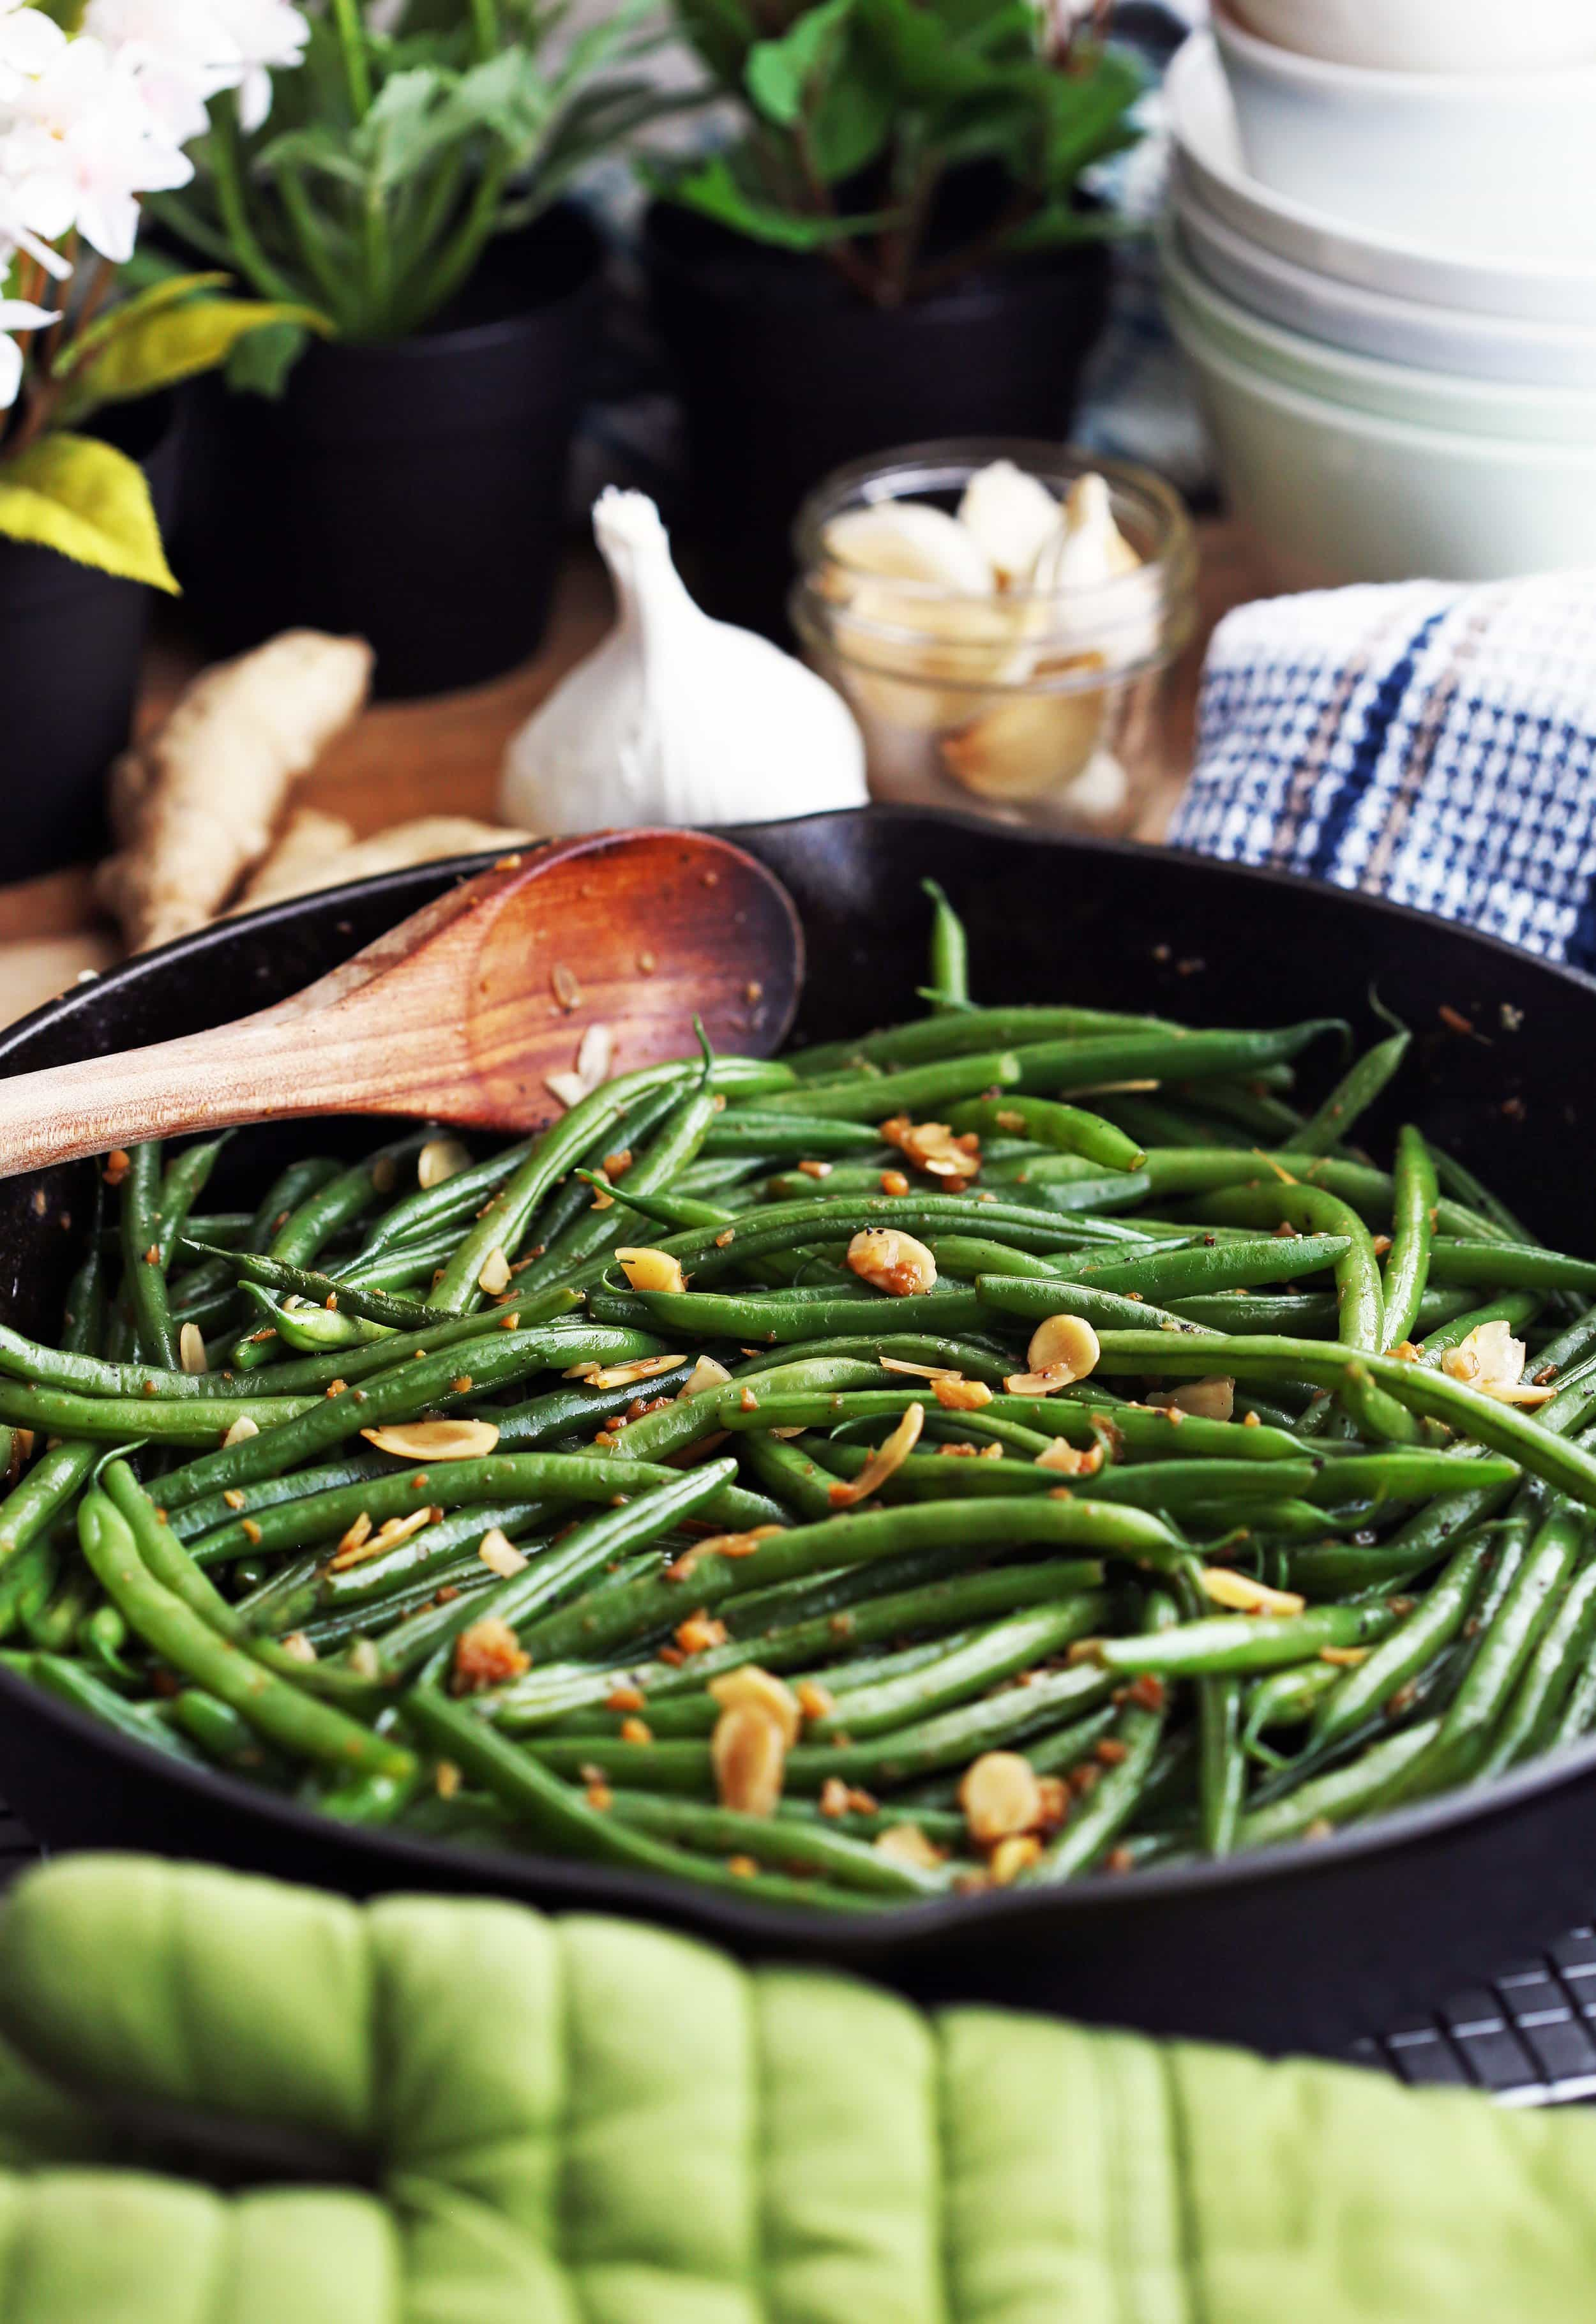 Sautéed green beans with ginger, garlic, and almonds in an large cast iron skillet.